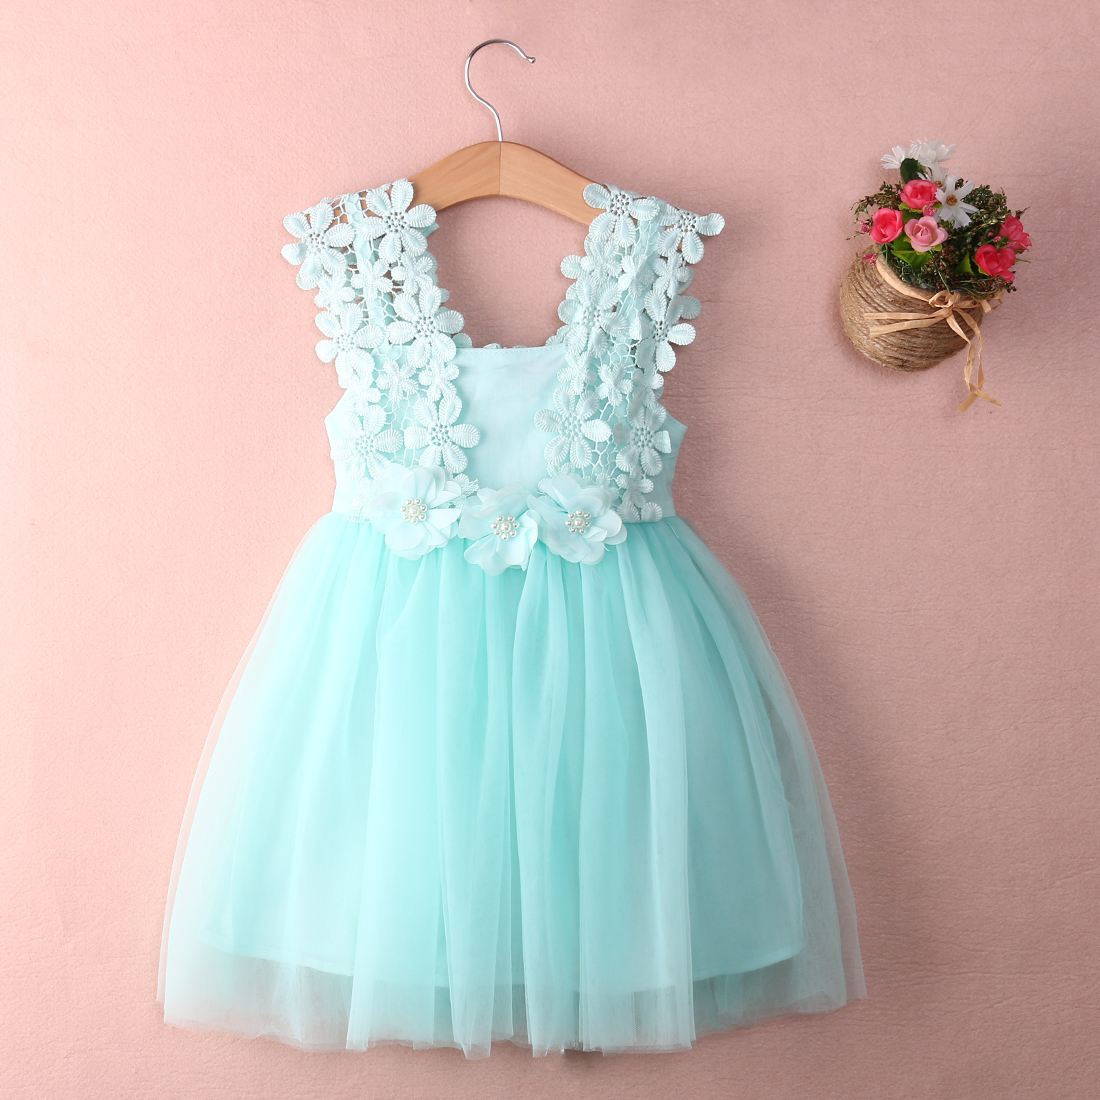 Adorable Kids Baby Girl Dress Princess Party Pearl Lace Tulle Flower ...